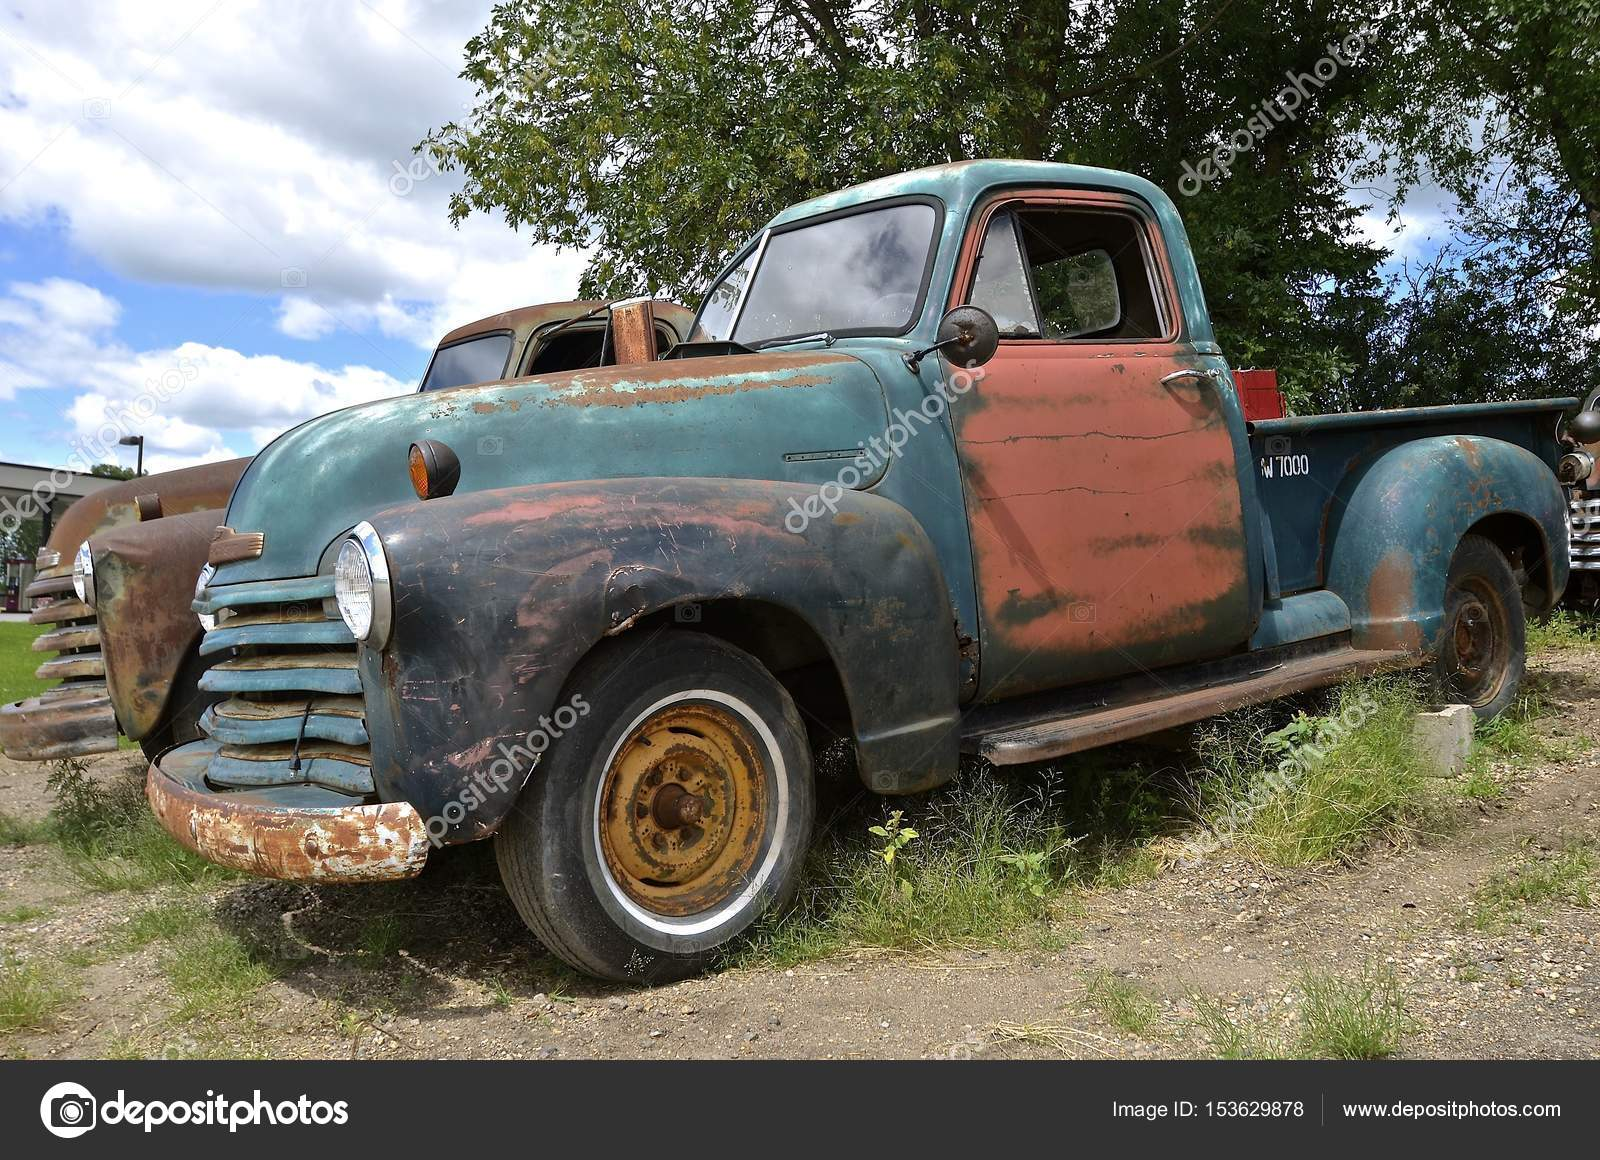 Old Chevy pickup full of patina – Stock Editorial Photo © fiskness ...